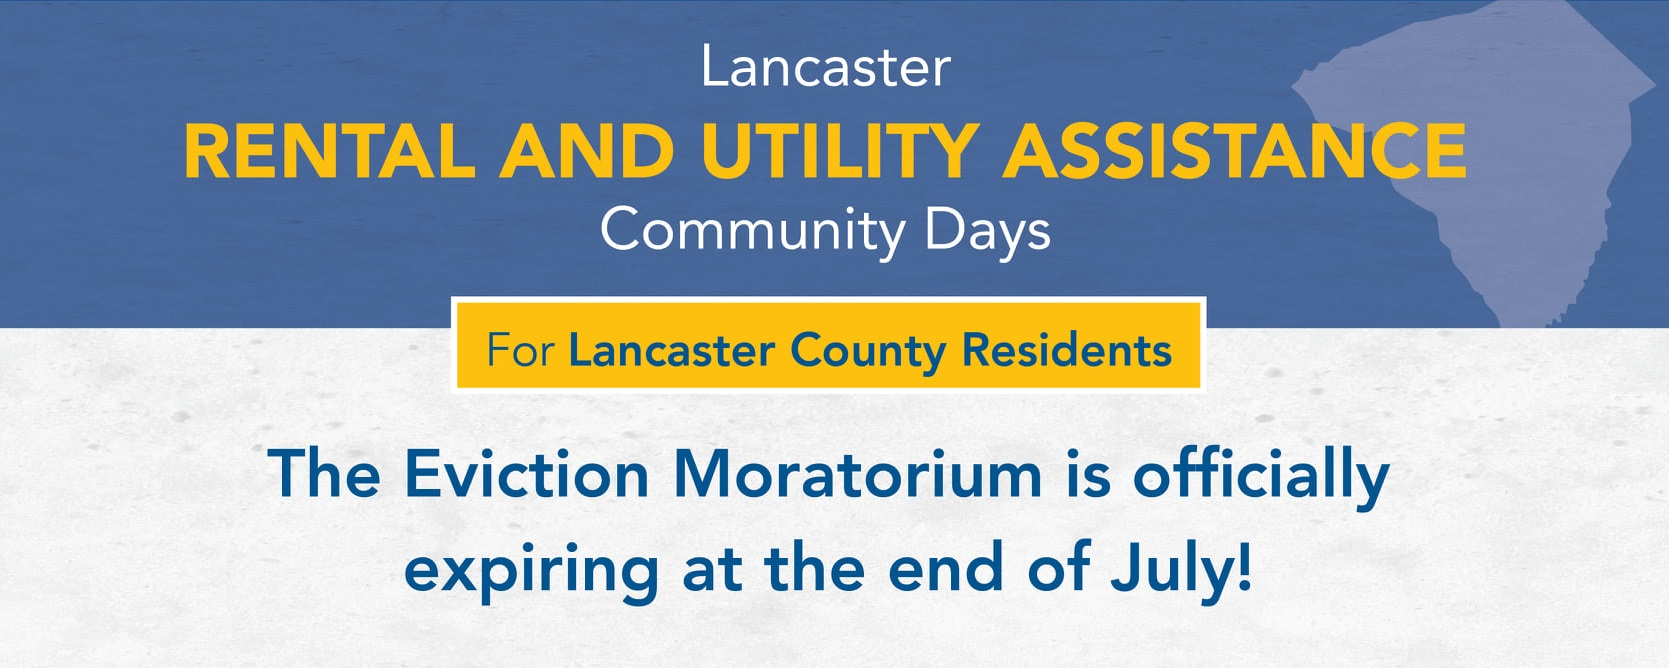 (Source: Lancaster County Redevelopment Authority)